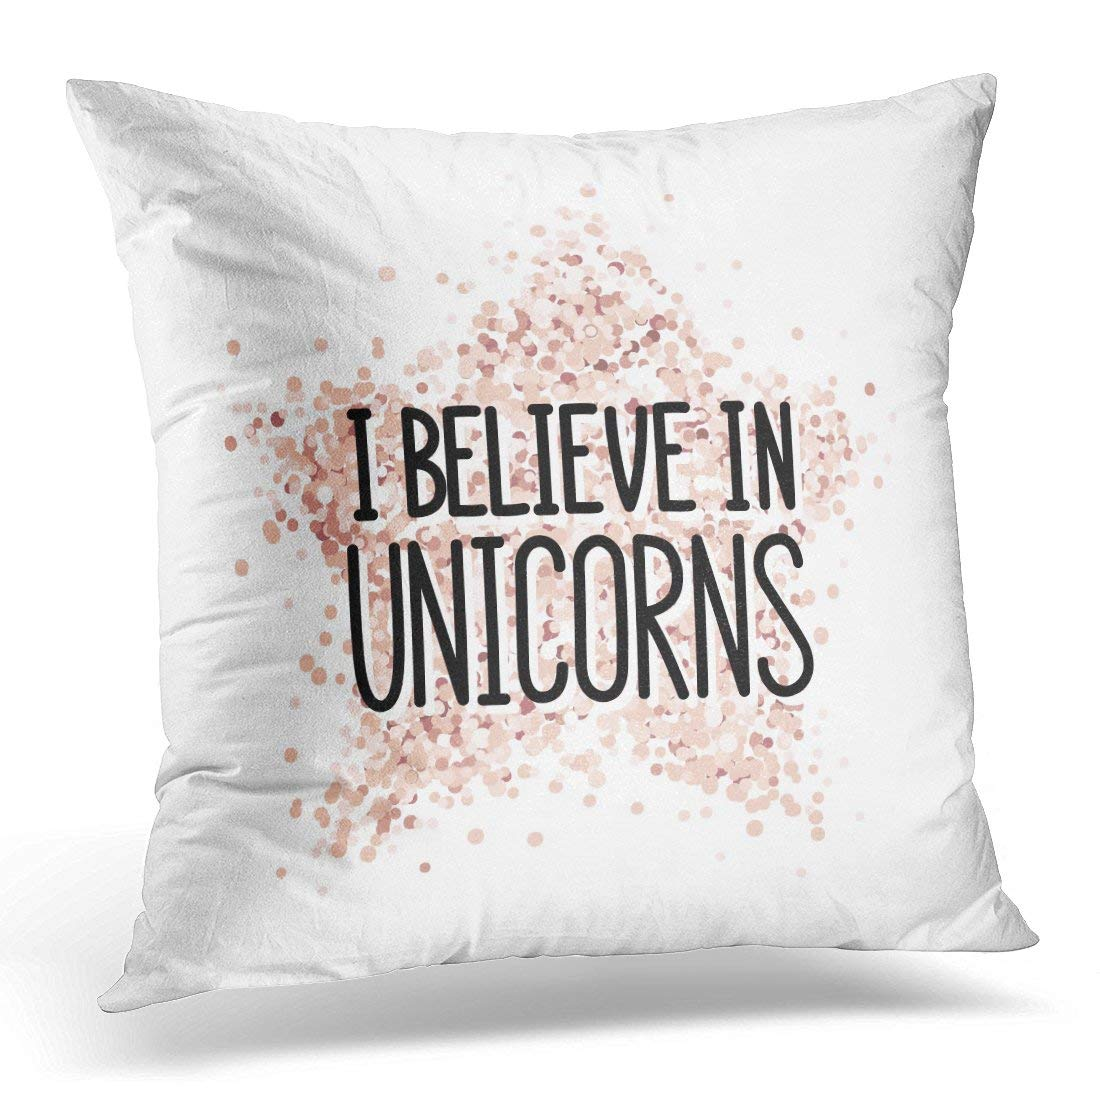 USART White Abstract The Quote I Believe in Unicorns on Pink Gold Glitter Star Sticker Cute Pillow Case Pillow Cover 18x18 inch